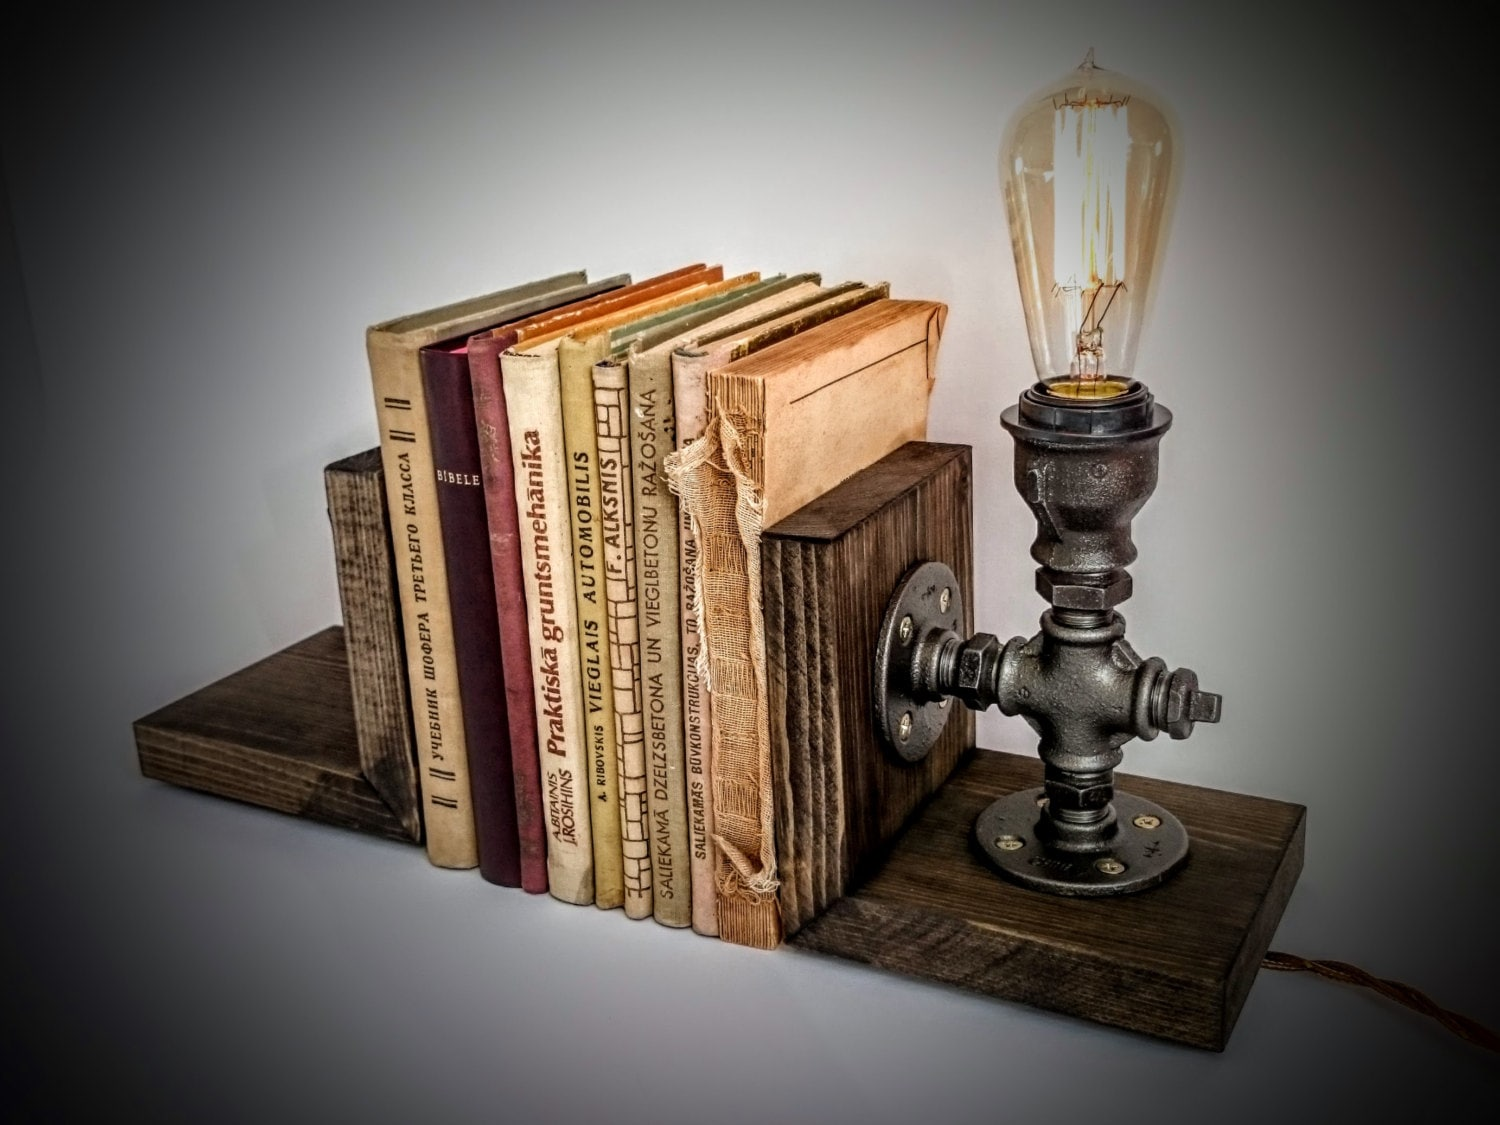 capricious steampunk bookends. Capricious Steampunk Bookends Home Designing List of Synonyms and Antonyms  the Word steampunk bookends Design Plan